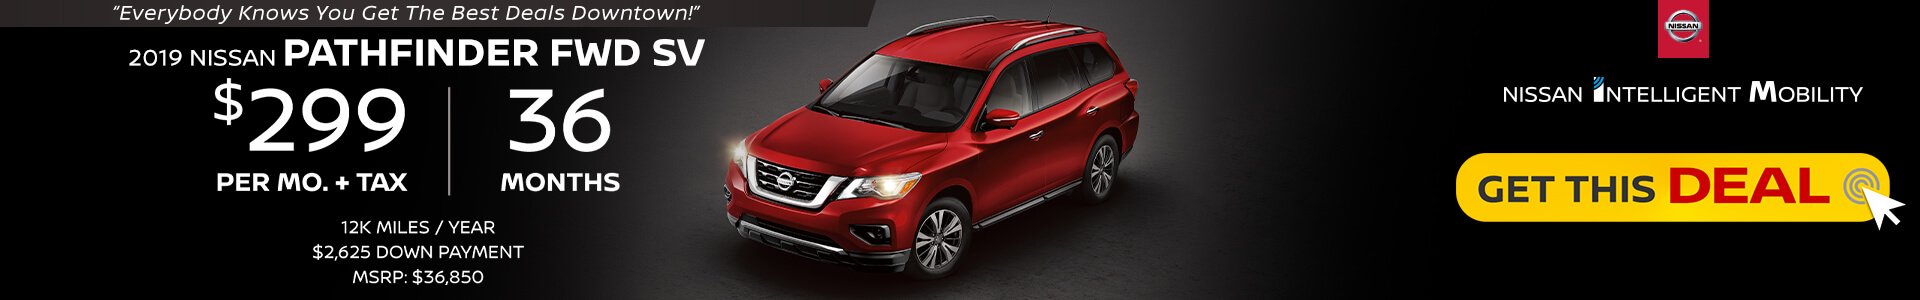 Pathfinder $299 Lease